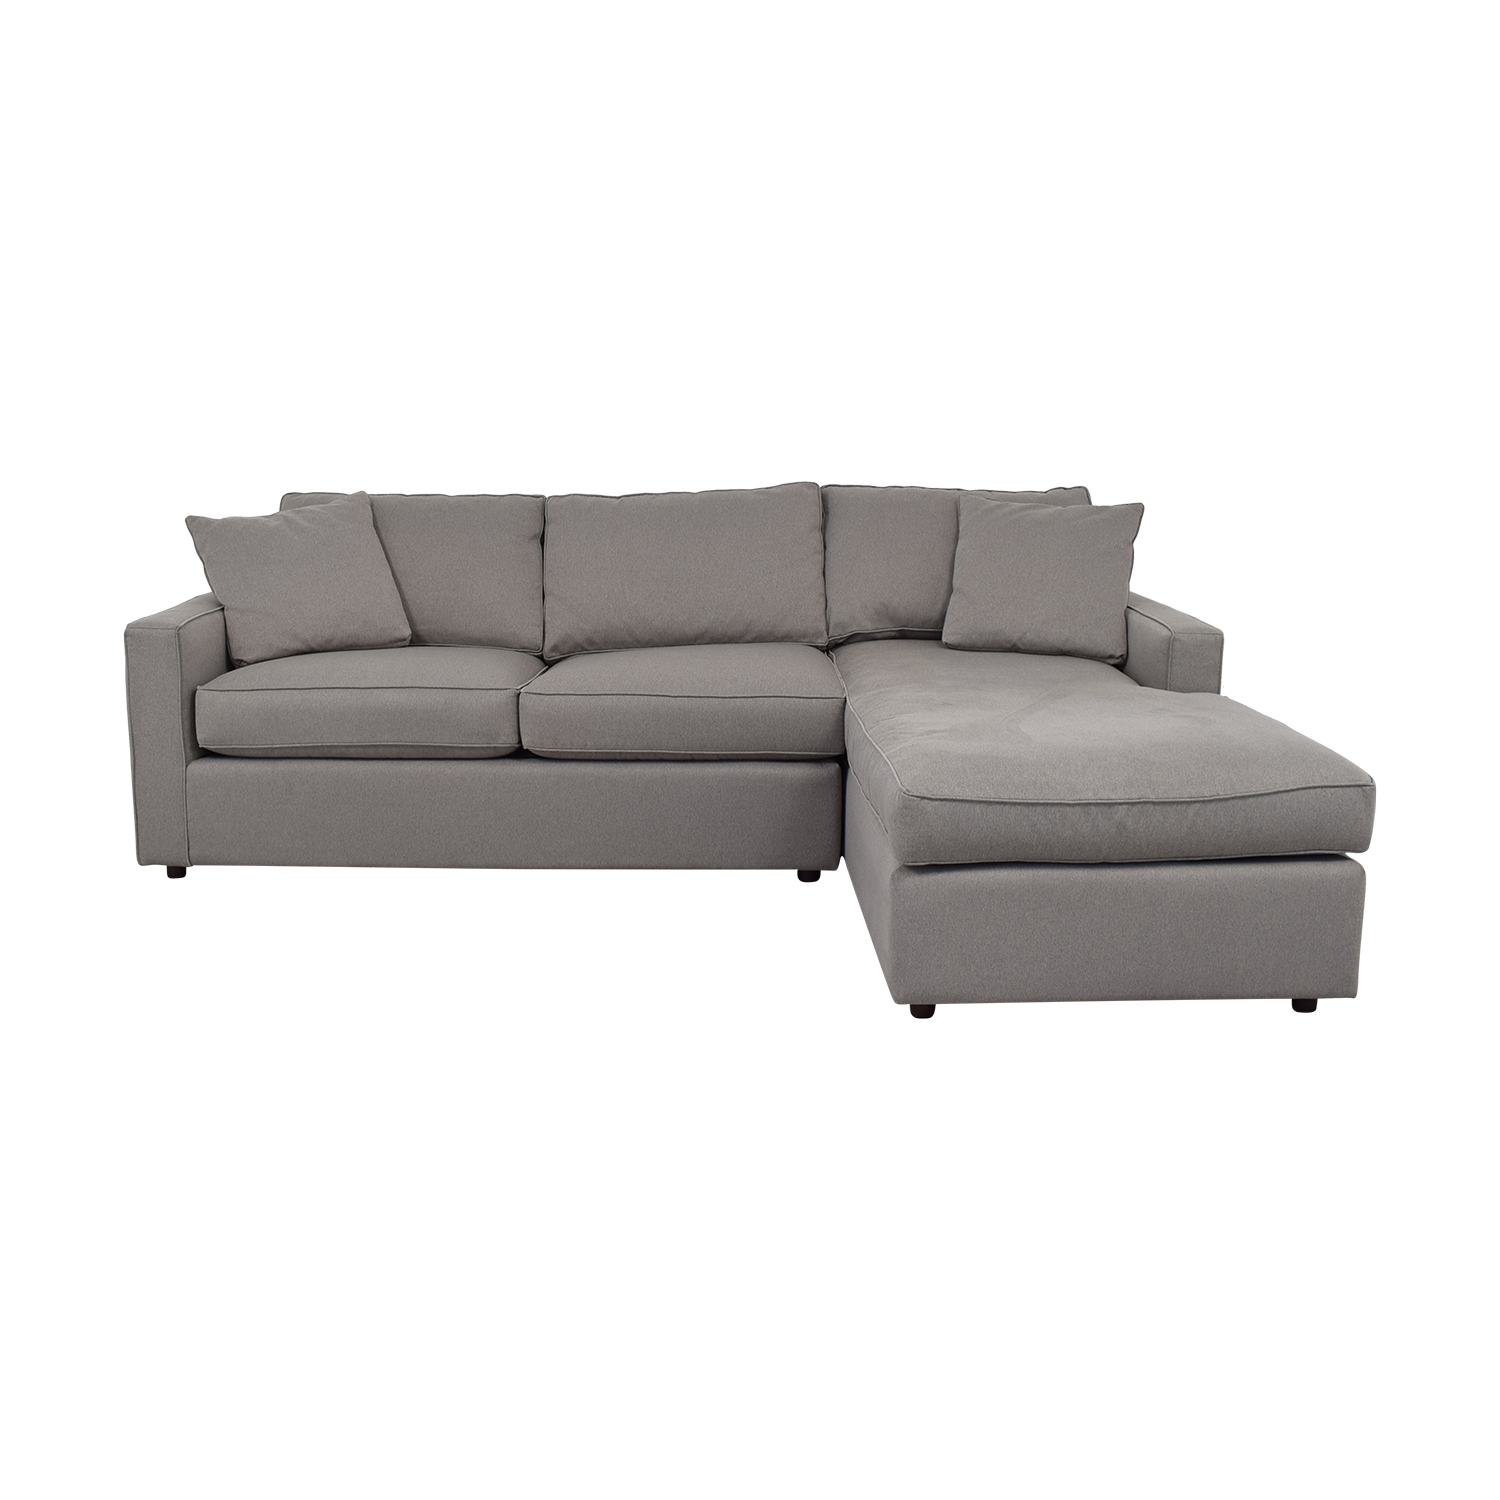 64 Off Room Board York Sofa With Chaise Sofas